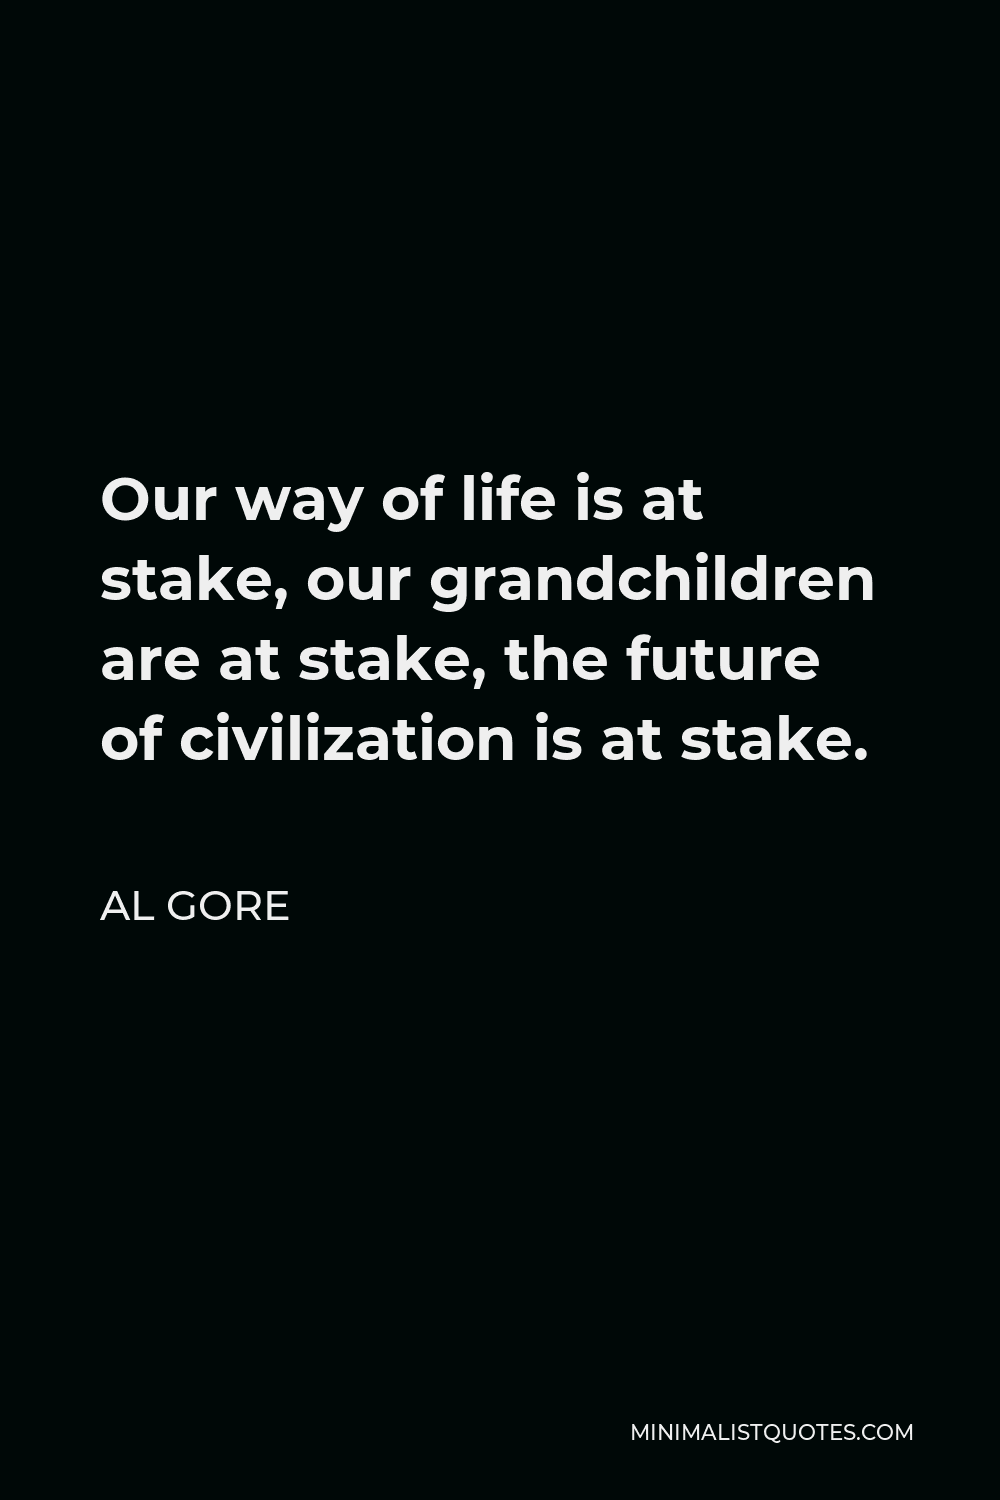 Al Gore Quote - Our way of life is at stake, our grandchildren are at stake, the future of civilization is at stake.